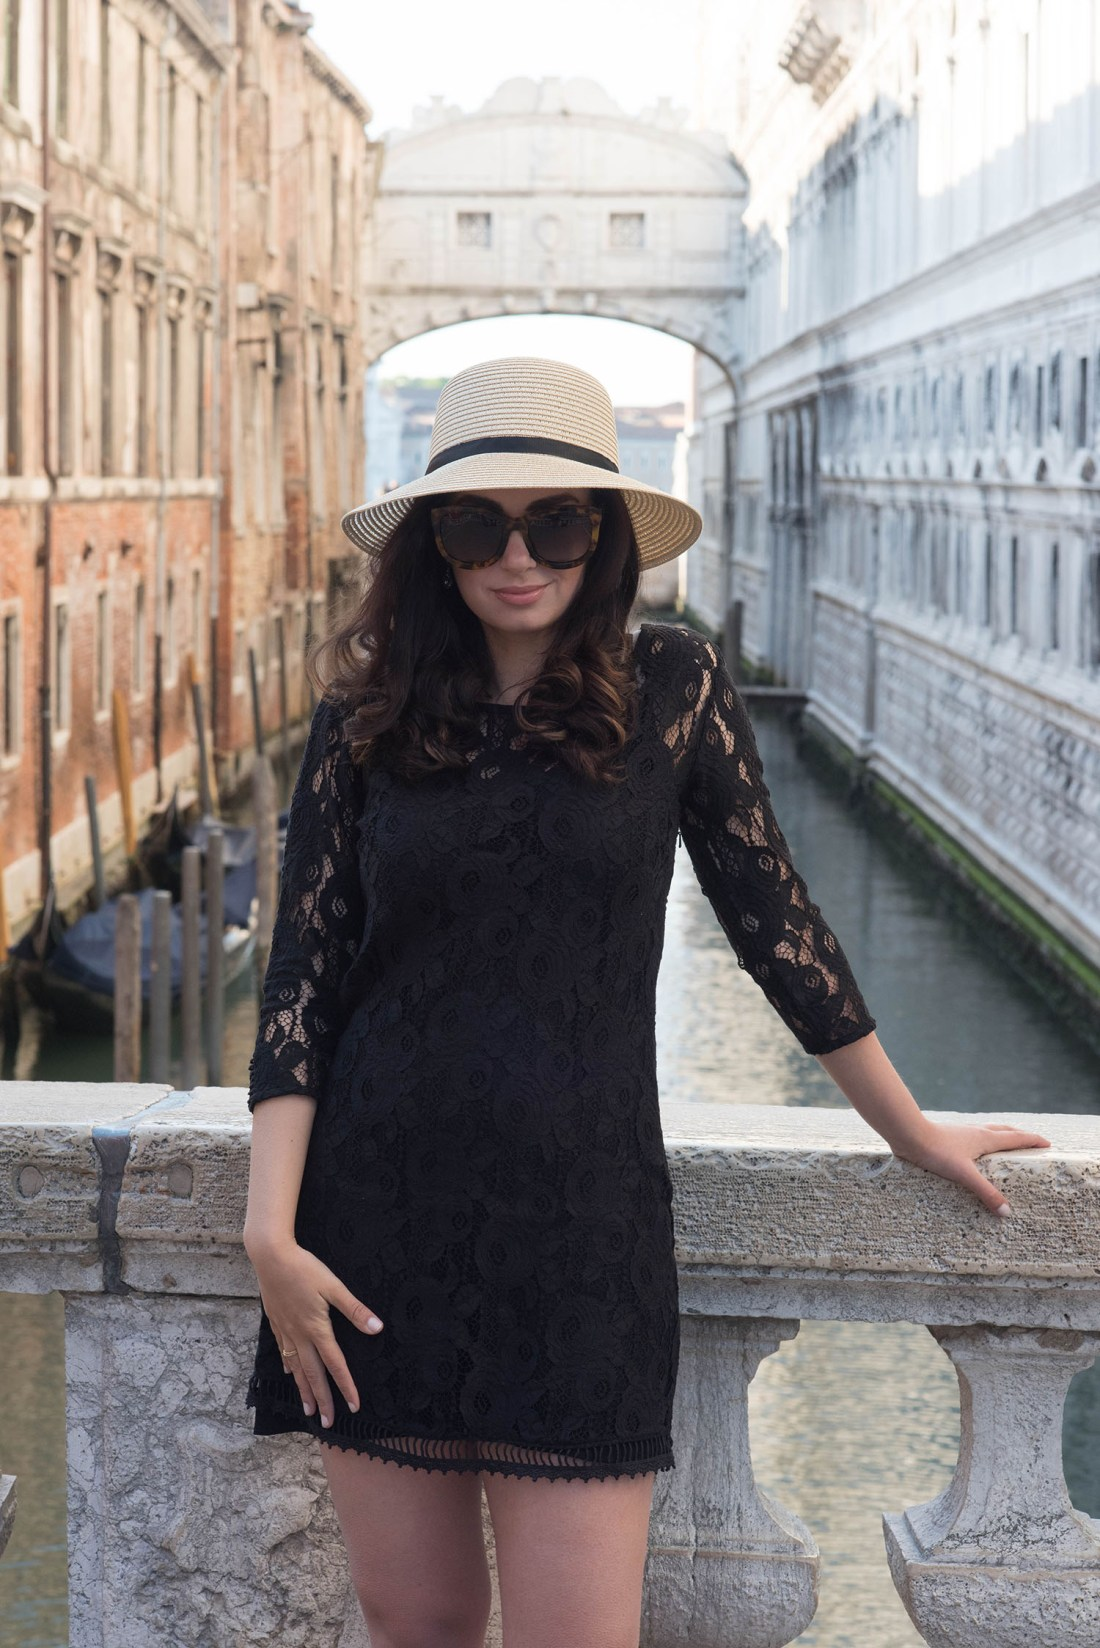 Portrait of fashion blogger Cee Fardoe of Coco & Vera wearing Anine Bing Los Angeles sunglasses and a Gentlefawn dress in Venice